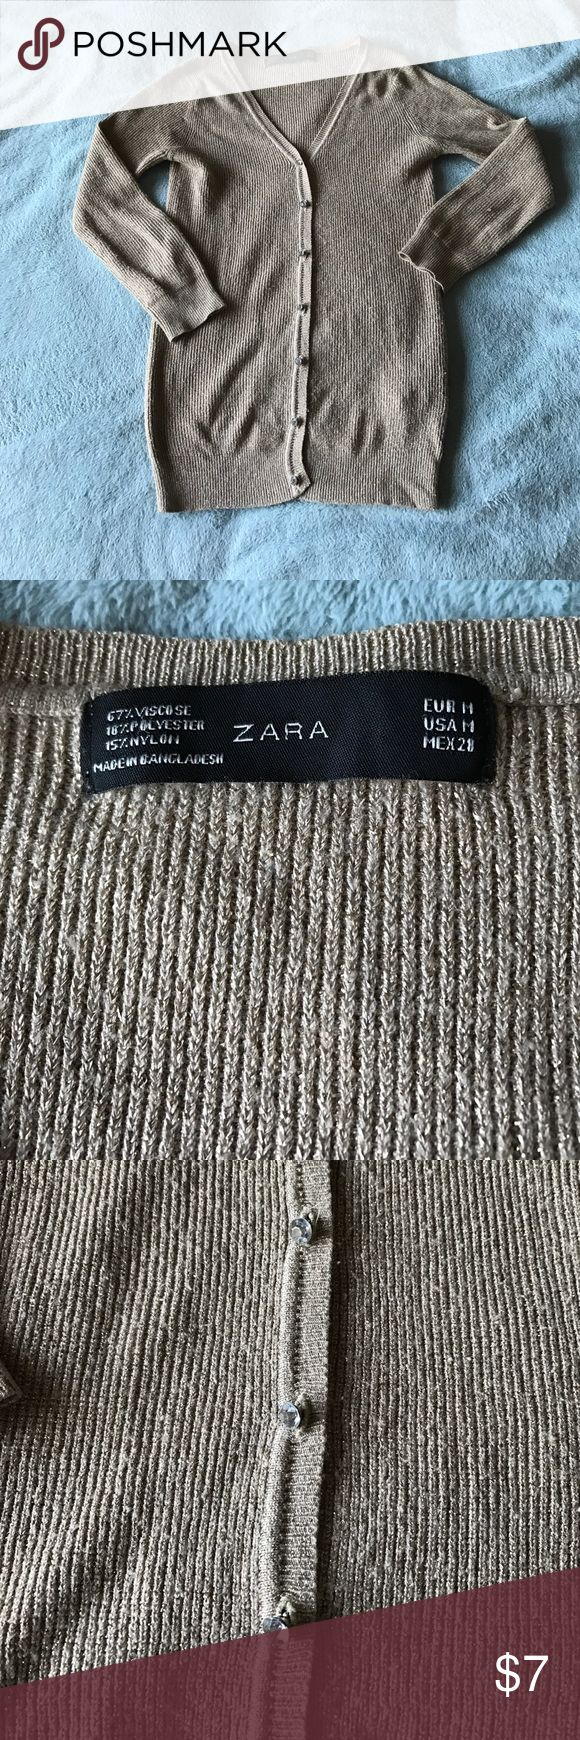 Zara Gold Cardigan Zara gold cardigan. Label says M. However I think it fits more snug like a small. Gold and shimmery. Used, but still super fun and flirty! Zara Sweaters Cardigans